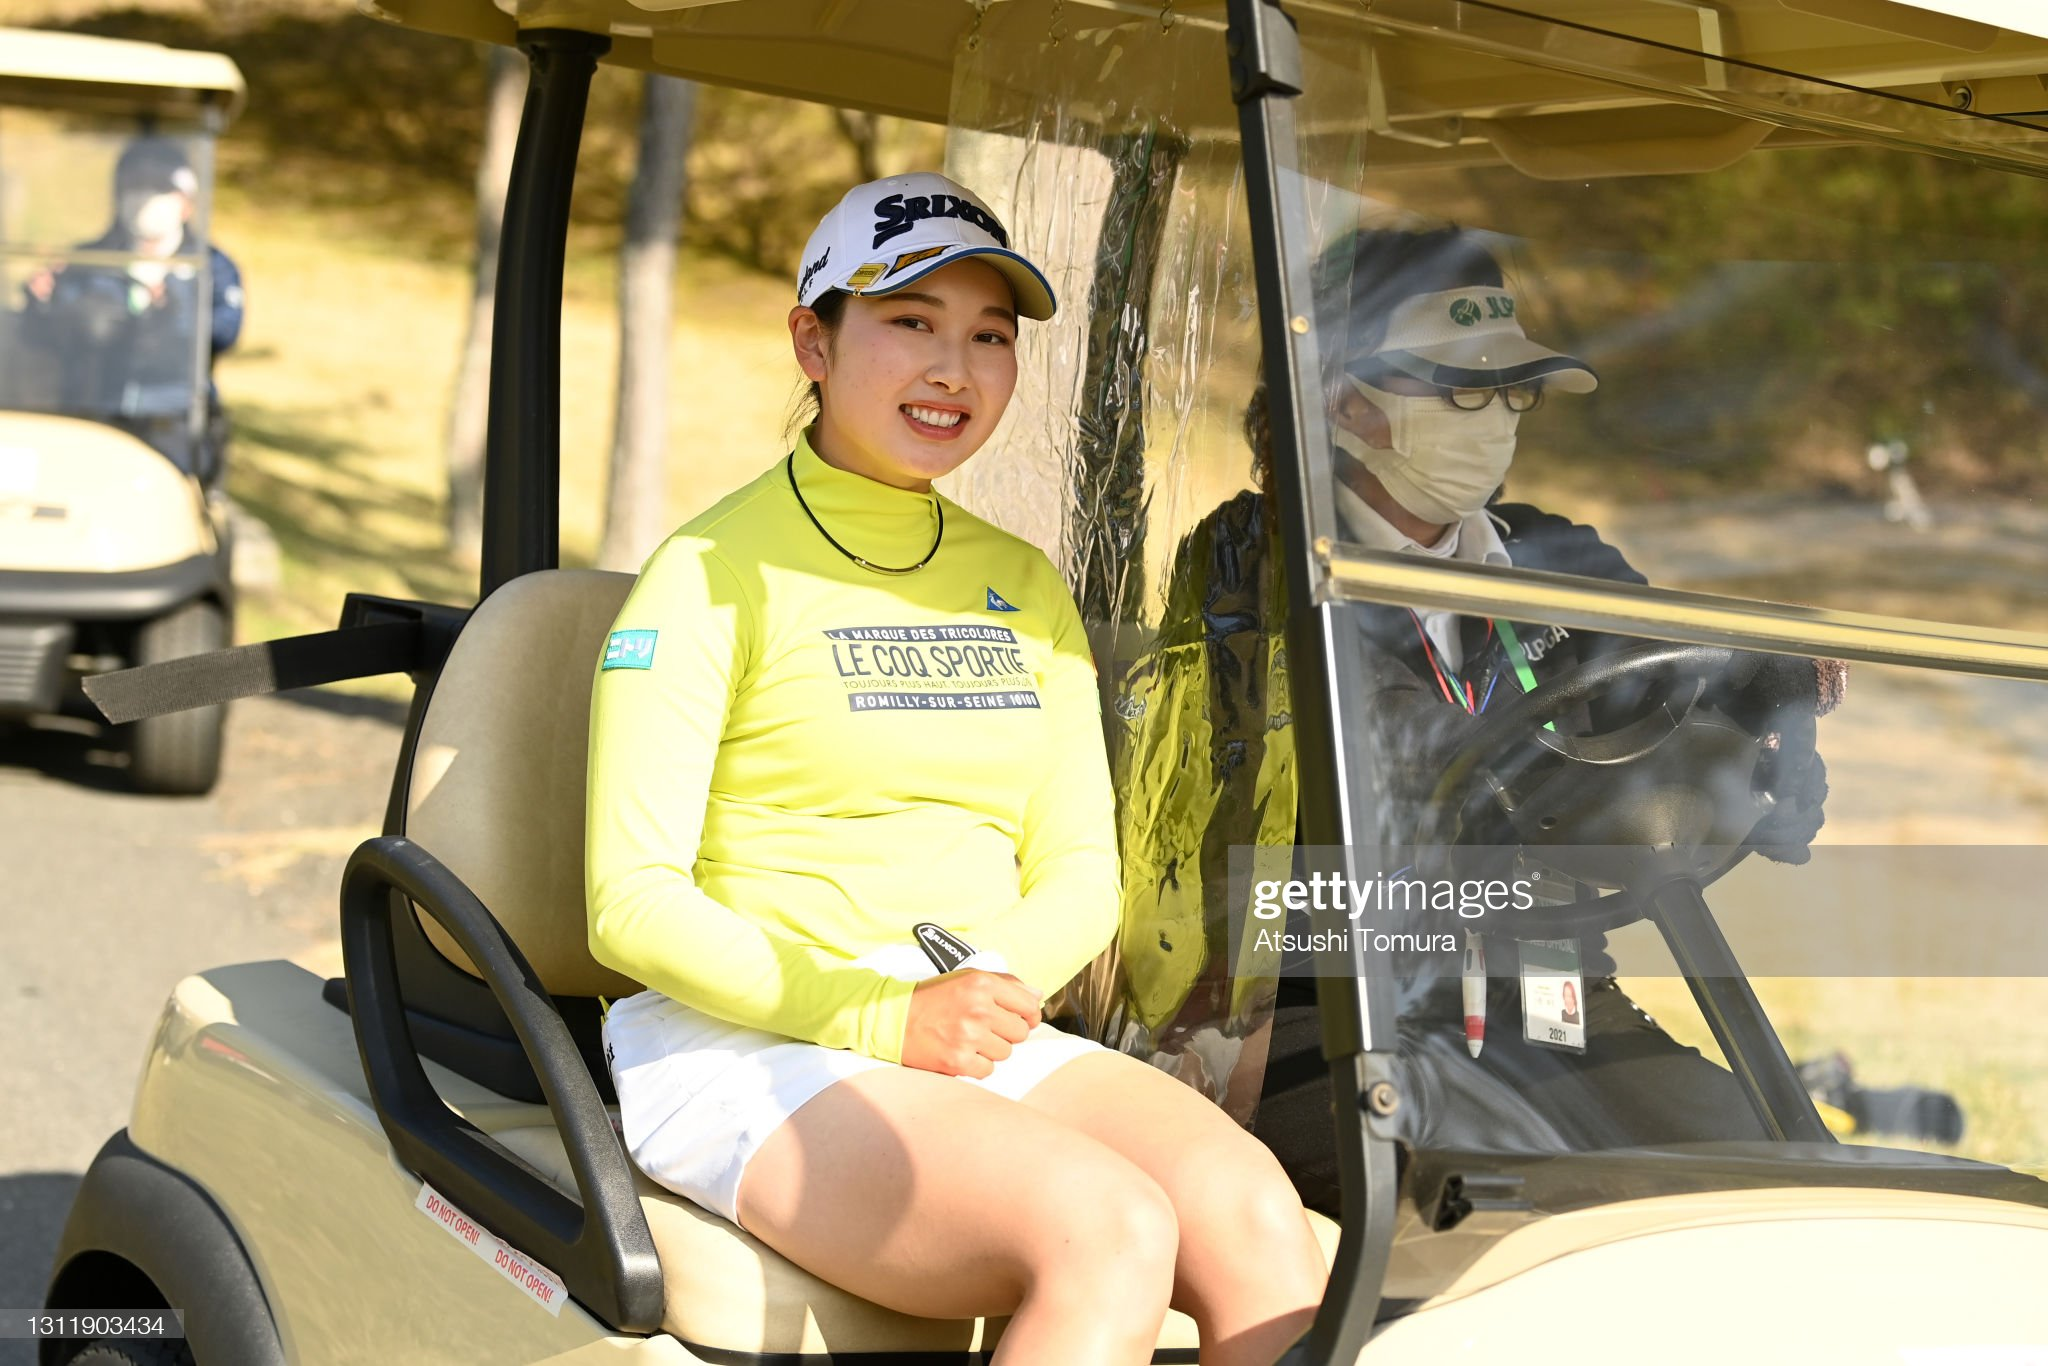 https://media.gettyimages.com/photos/sakura-koiwai-of-japan-is-seen-on-a-cart-on-her-way-to-the-18th-tee-picture-id1311903434?s=2048x2048